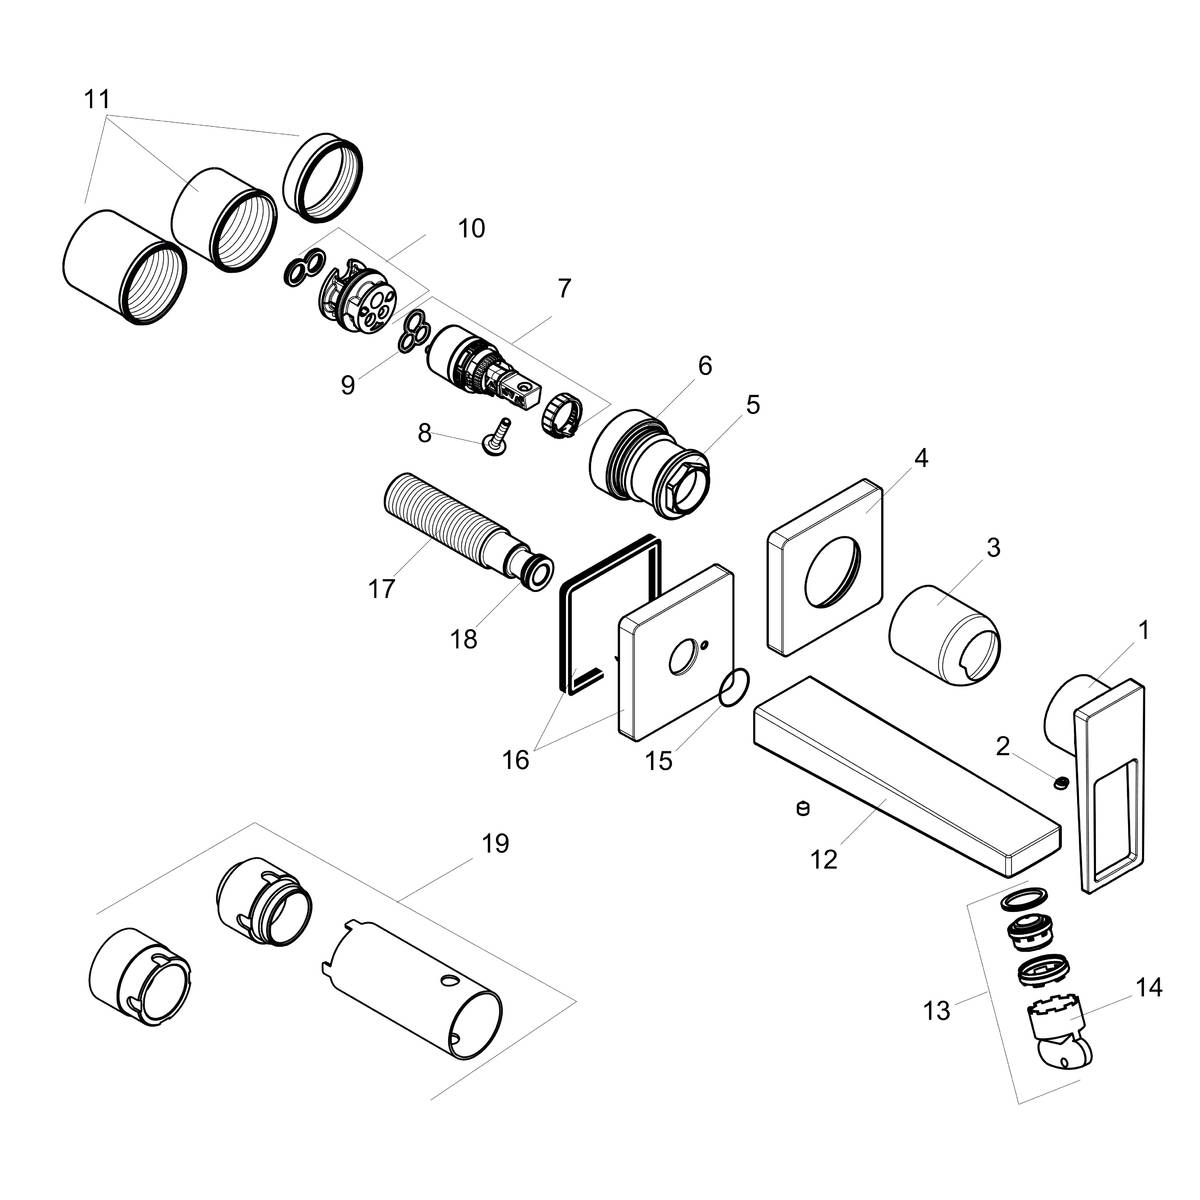 Parts Diagram For Innovations Single Handle Bathroom